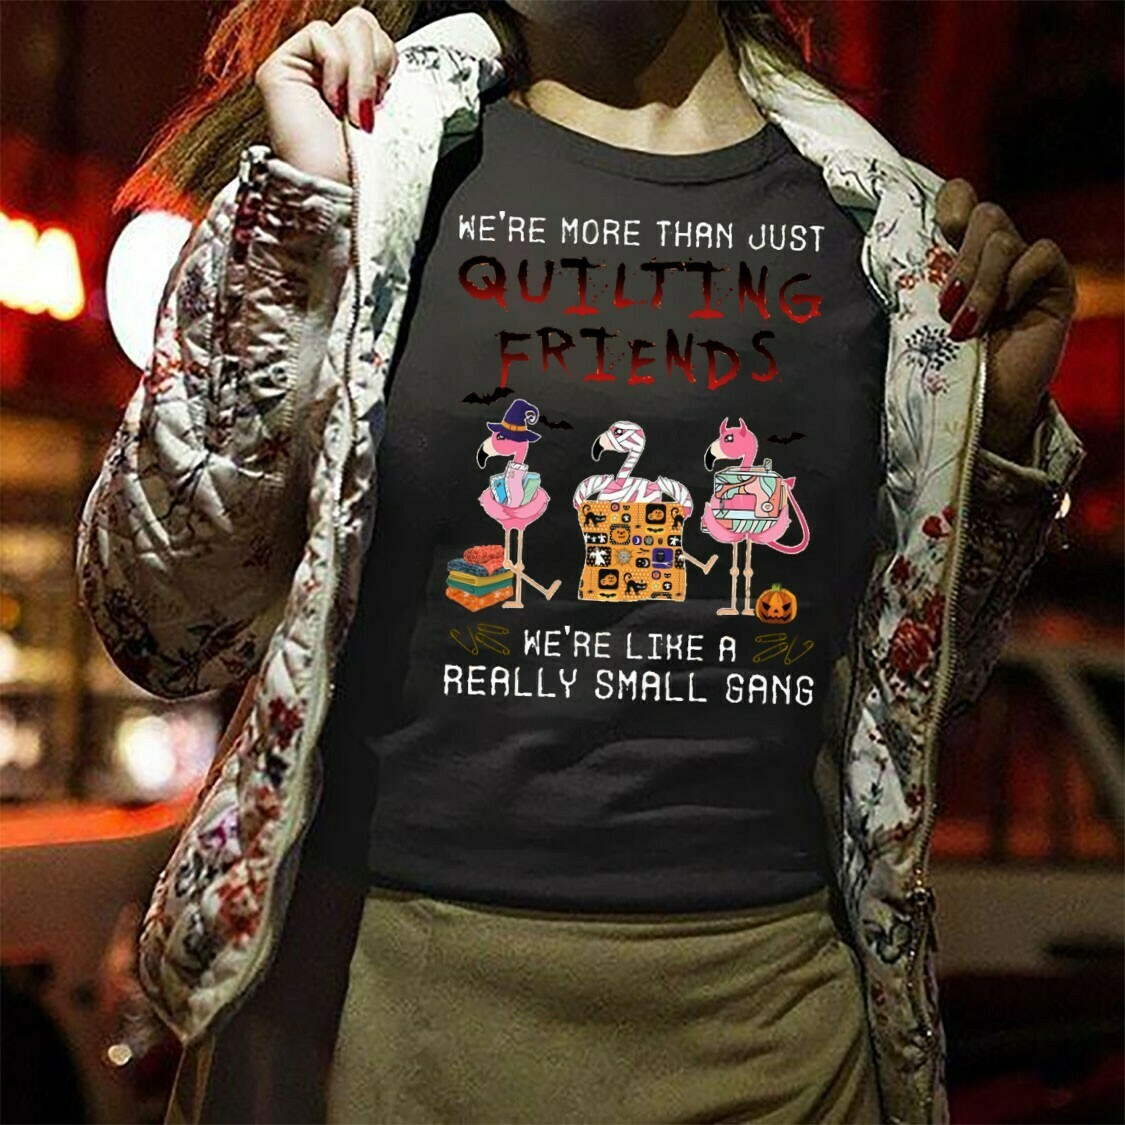 Flamingo Patchwork We're More Than Just Quilting Friends We're like A Really Small Gang Gifts For Quilters Women On Halloween Day T-Shirt Long Sleeve Sweatshirt Hoodie Jolly Family Gifts